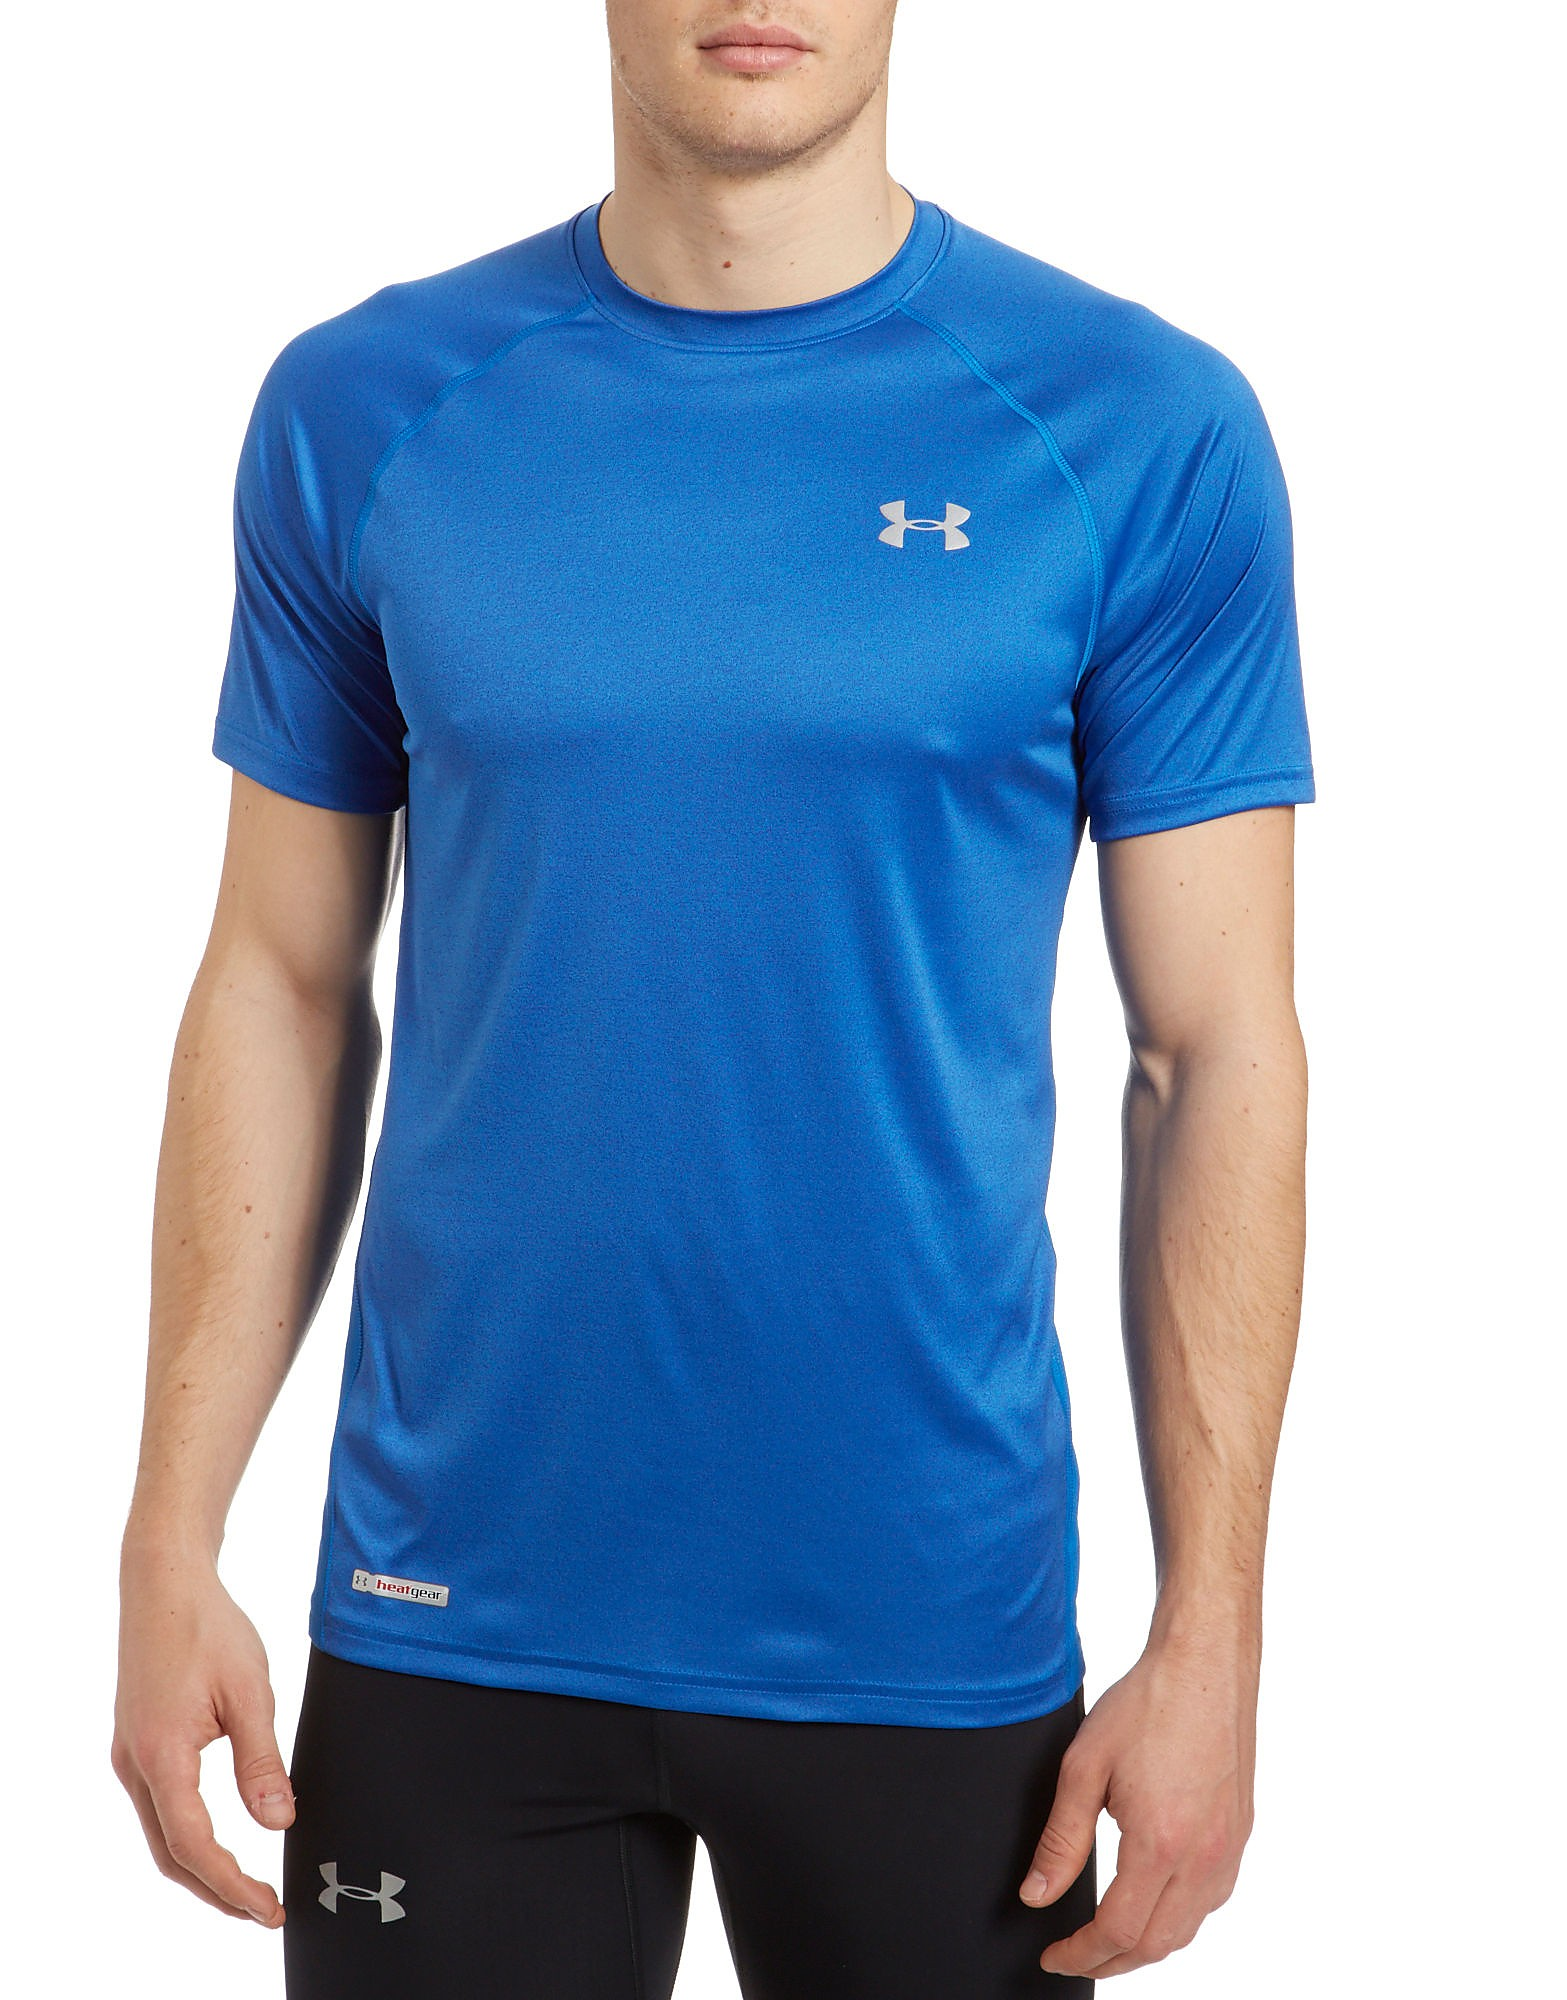 Under Armour Flyweight Run T-Shirt product image